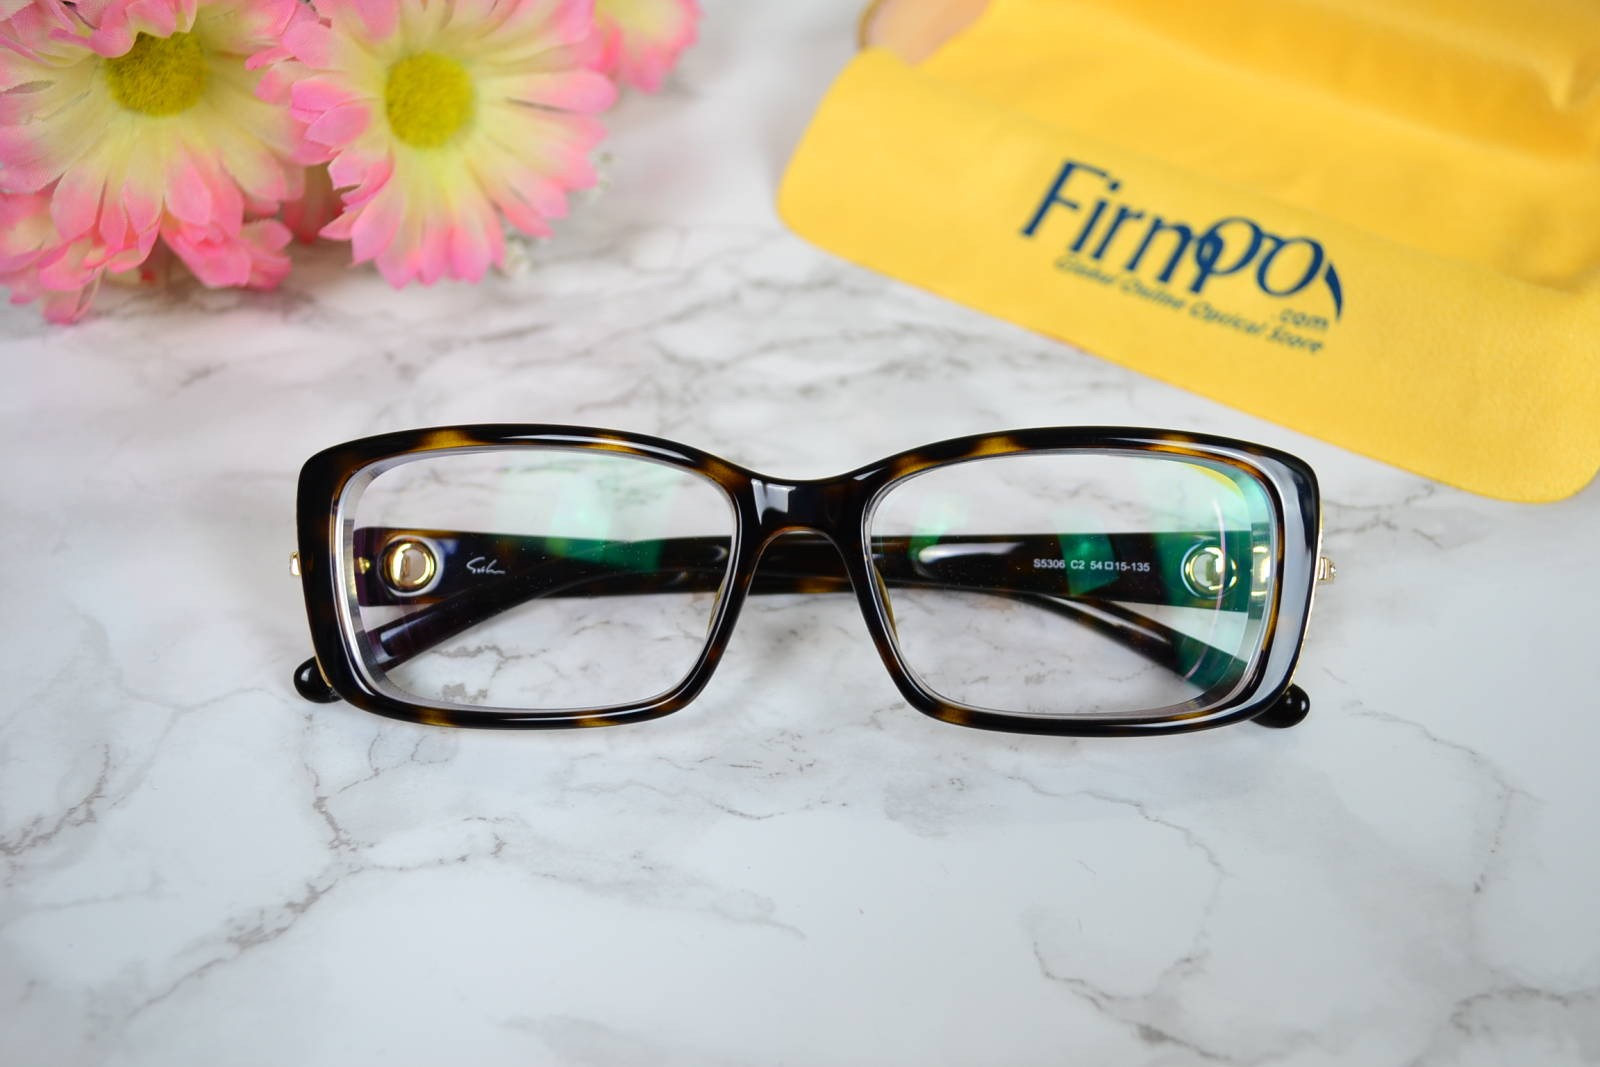 firmoo-review